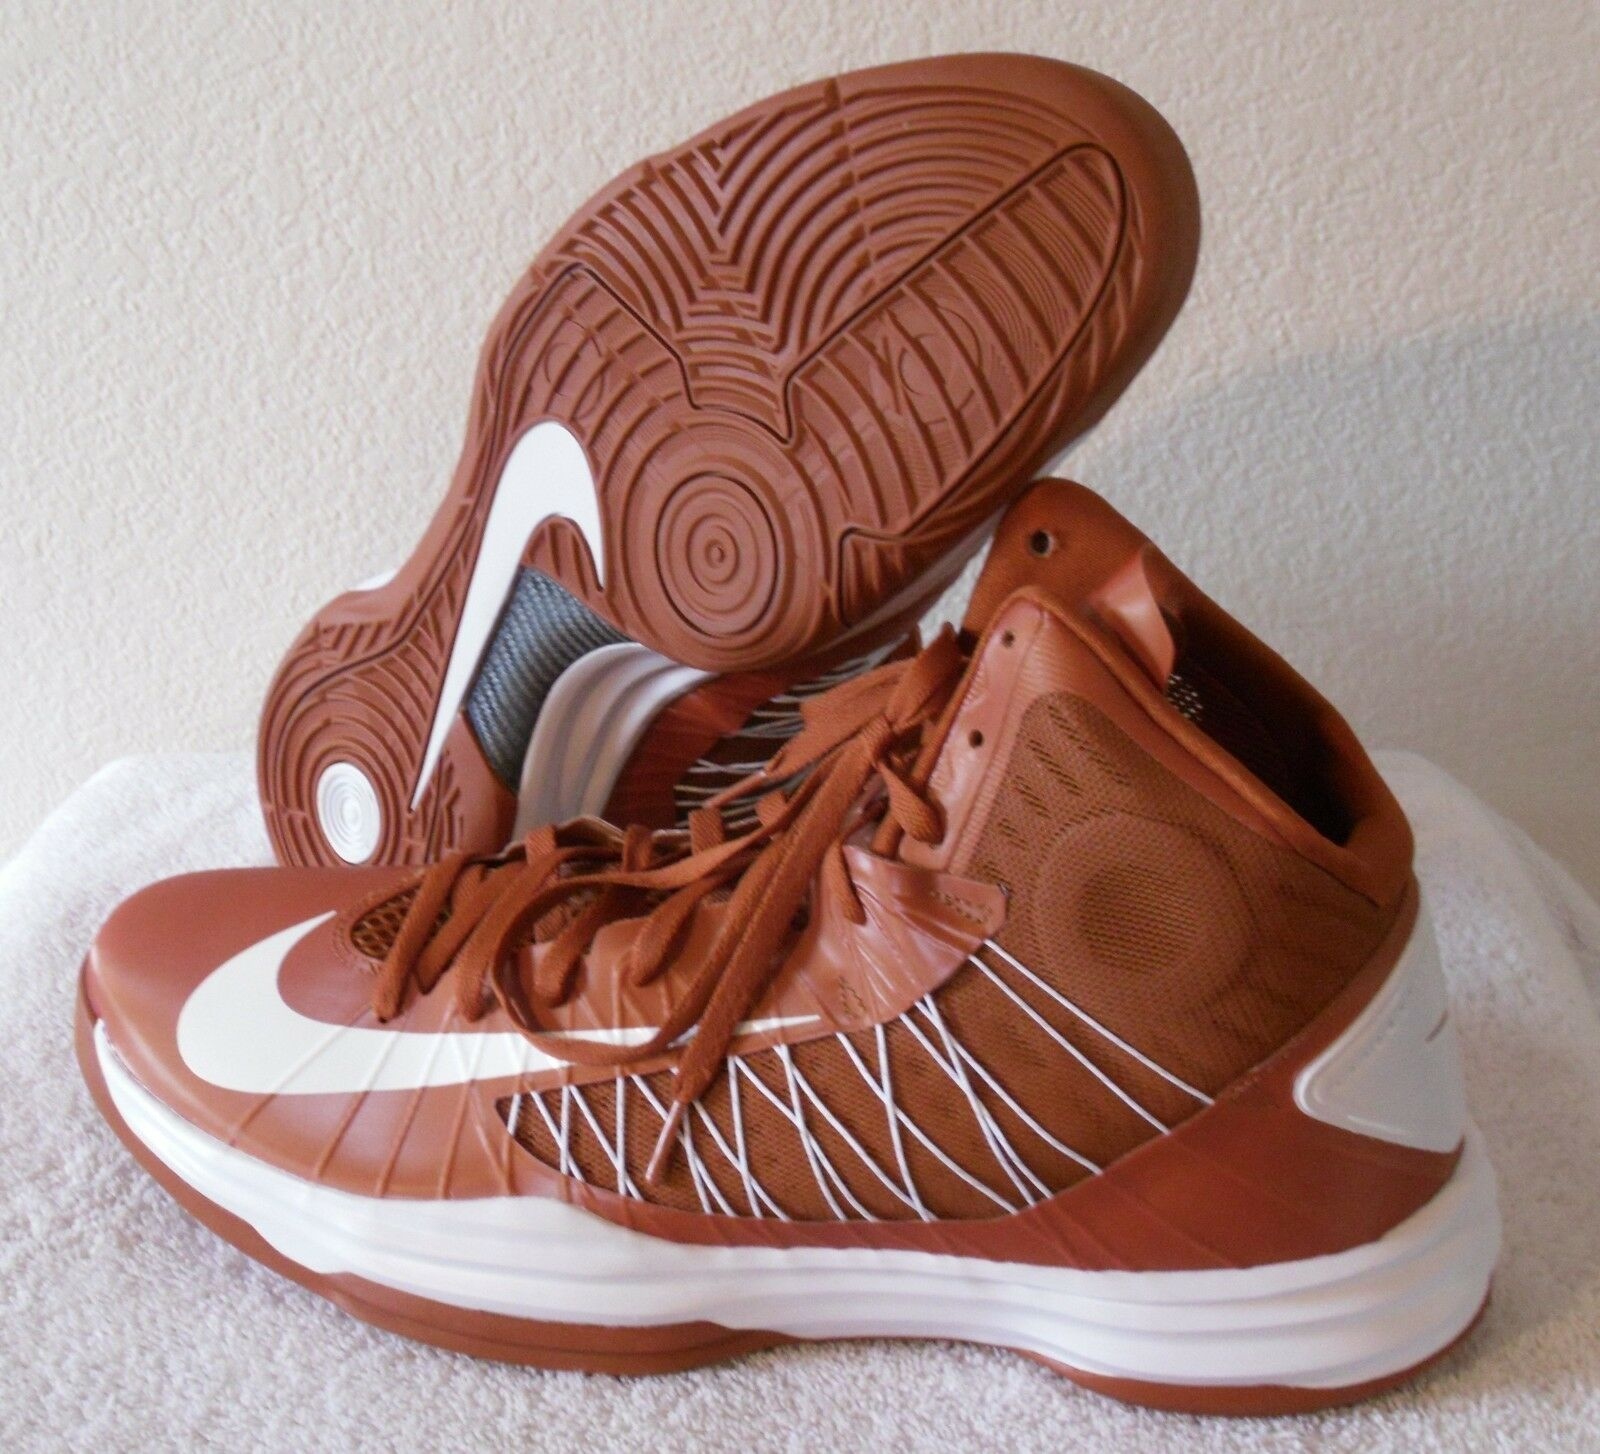 NEW Nike Hyperdunk TB Mens Basketball shoes 17.5 Burnt orange MSRP 125